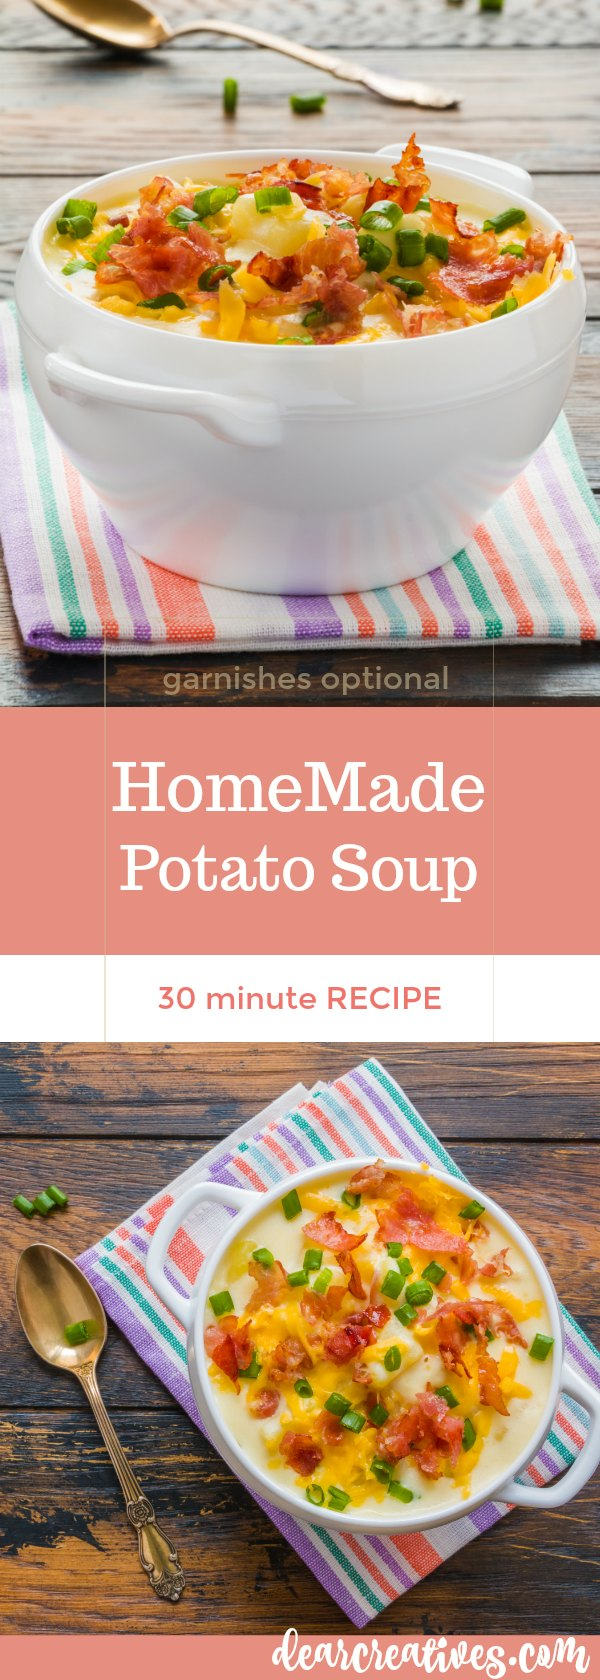 Homemade Potato Soup Recipe A Must Try 30 Minute Meal!